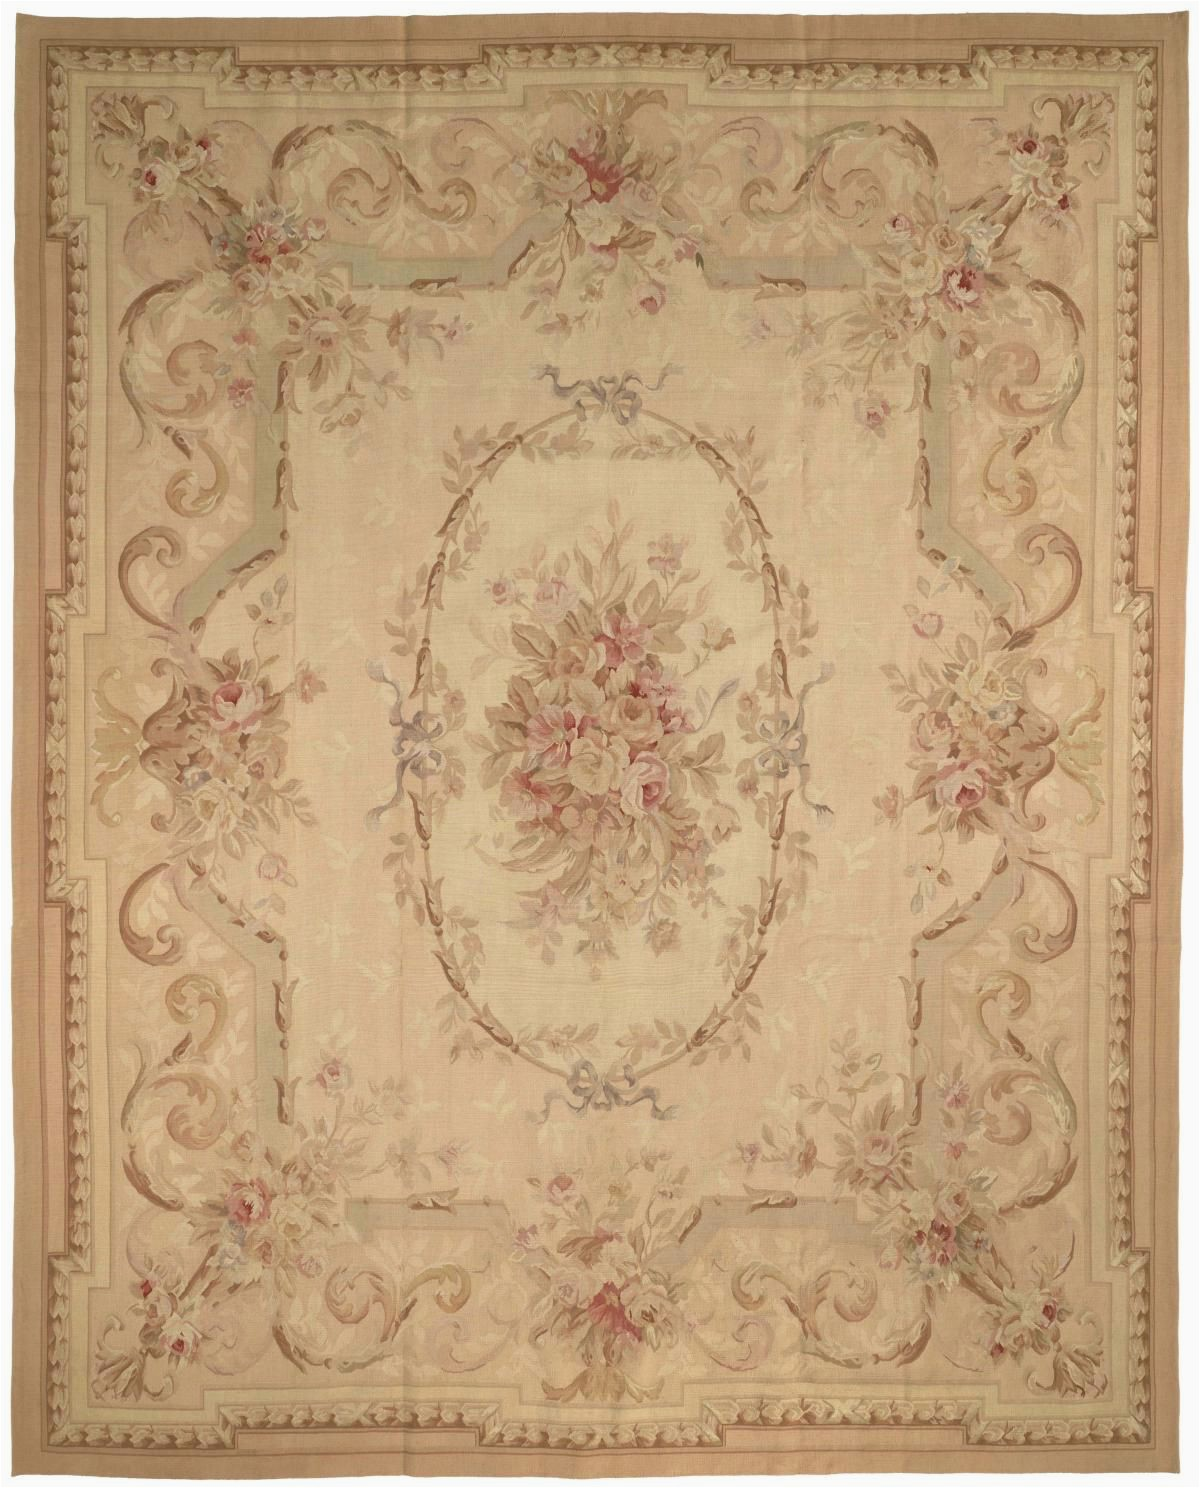 French Country Style area Rugs Rug Au16 Aubusson area Rugs by